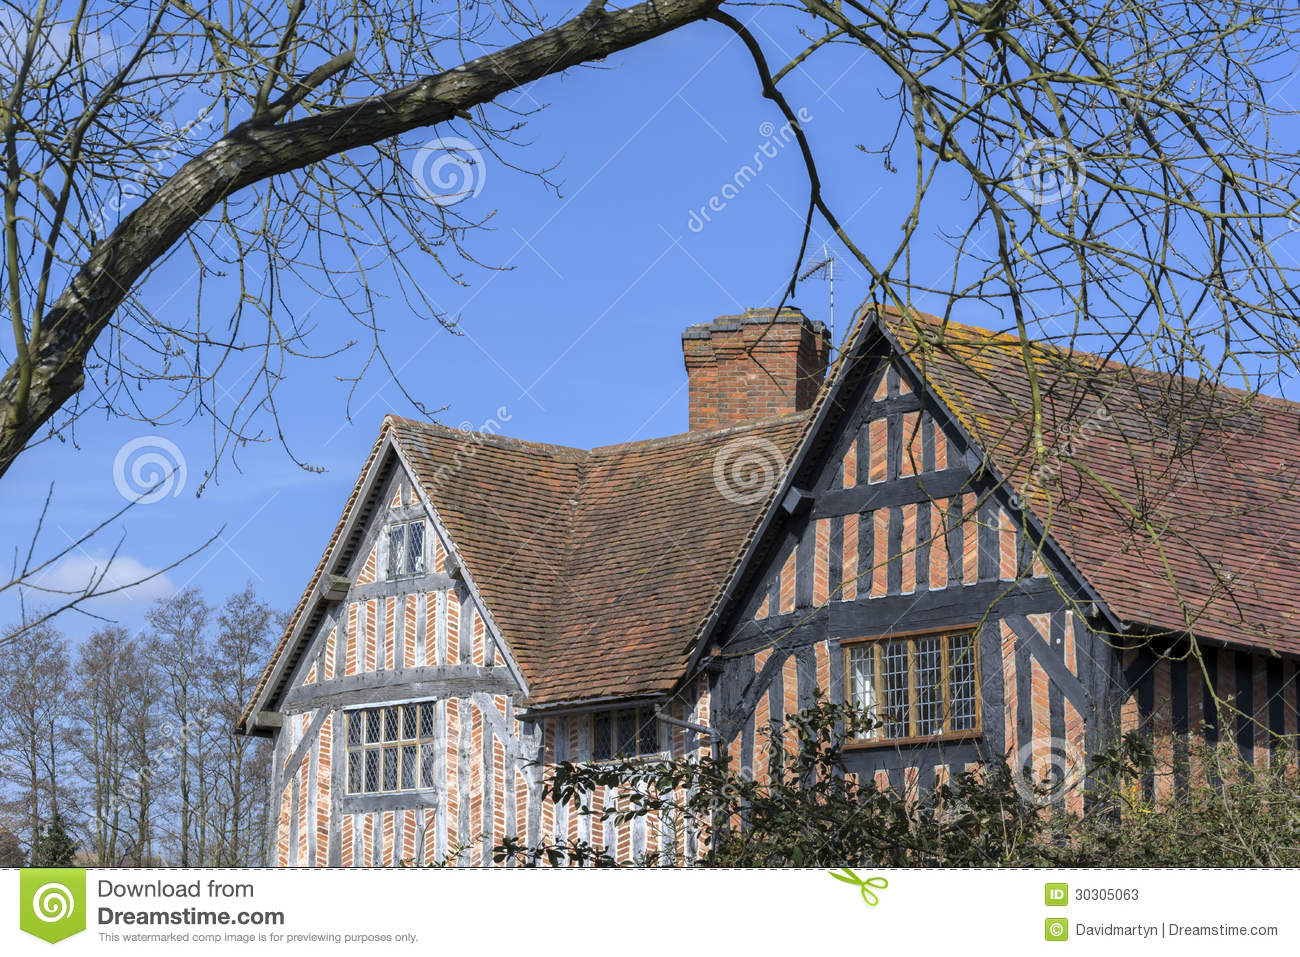 Housing stock photos image 30305063 for Half timbered house plans